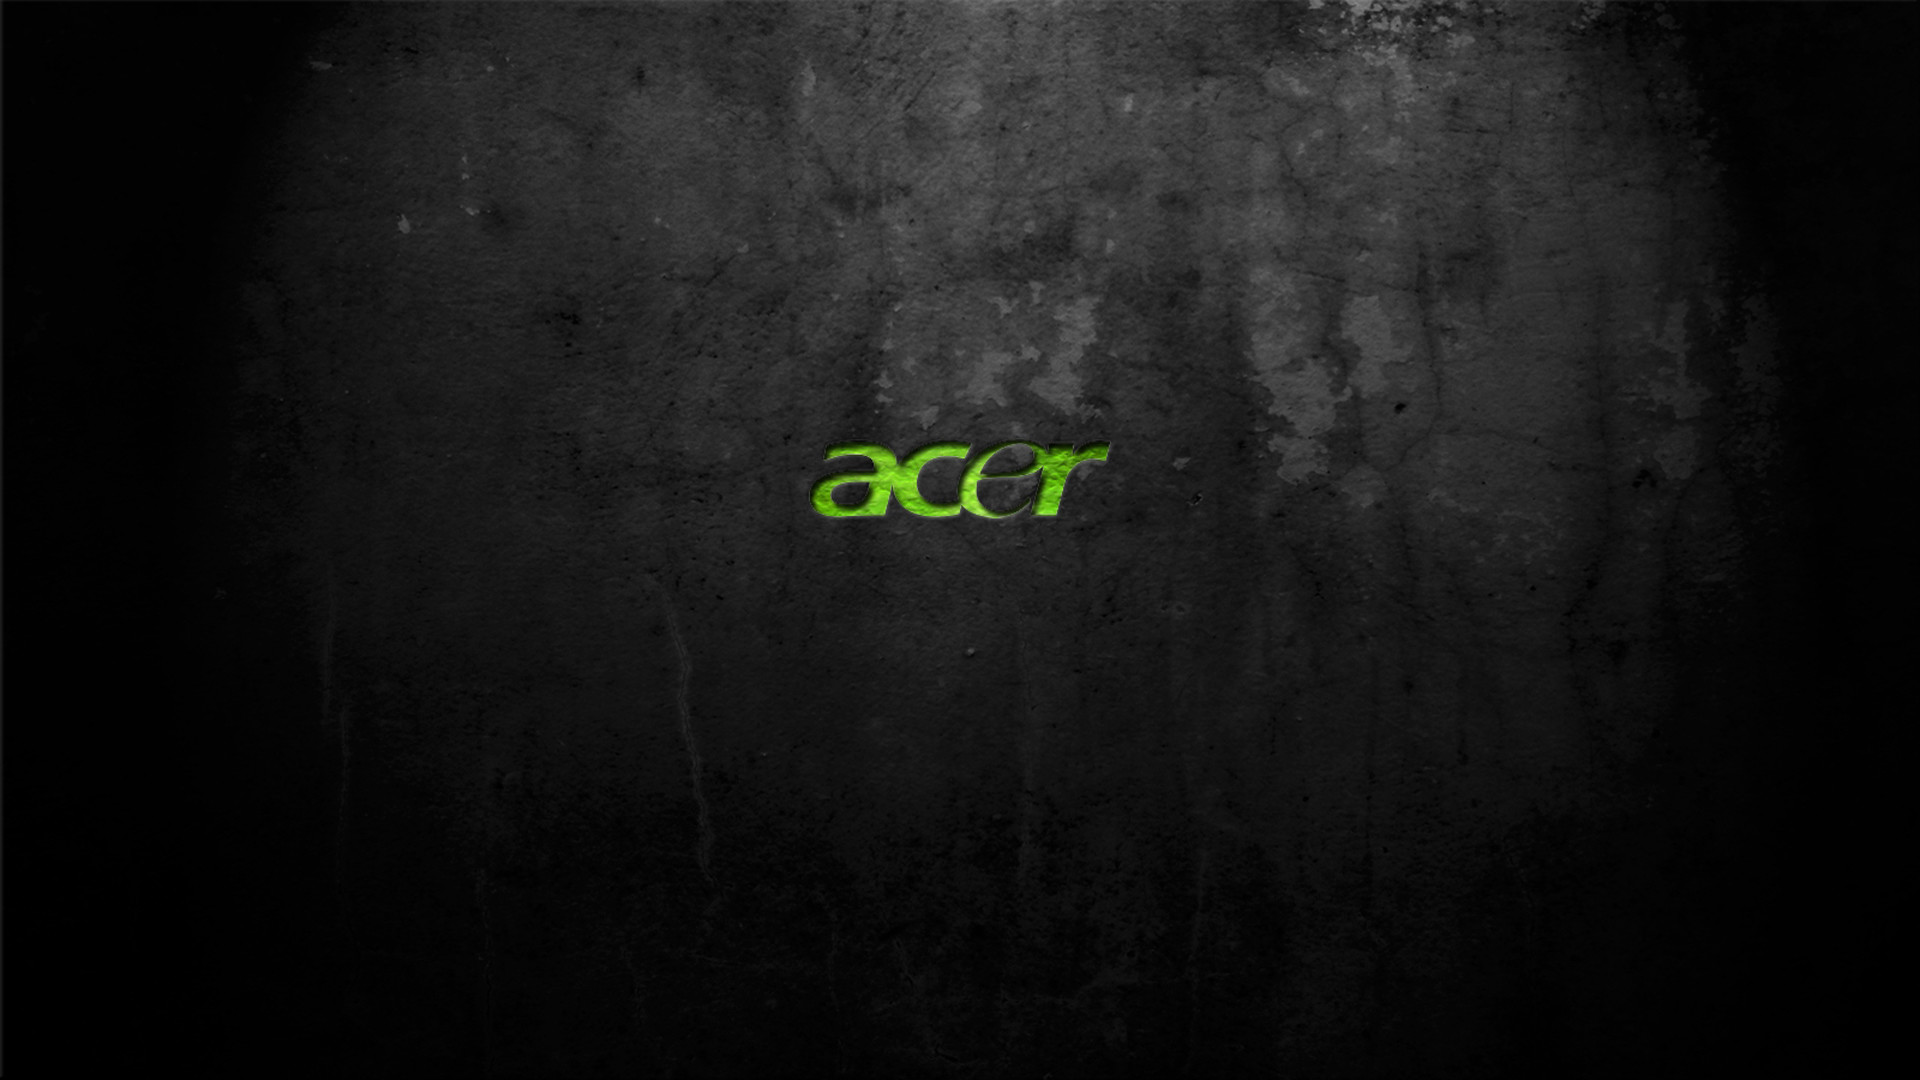 Acer Wallpaper 1080p Hd 1920x1080 64 Images